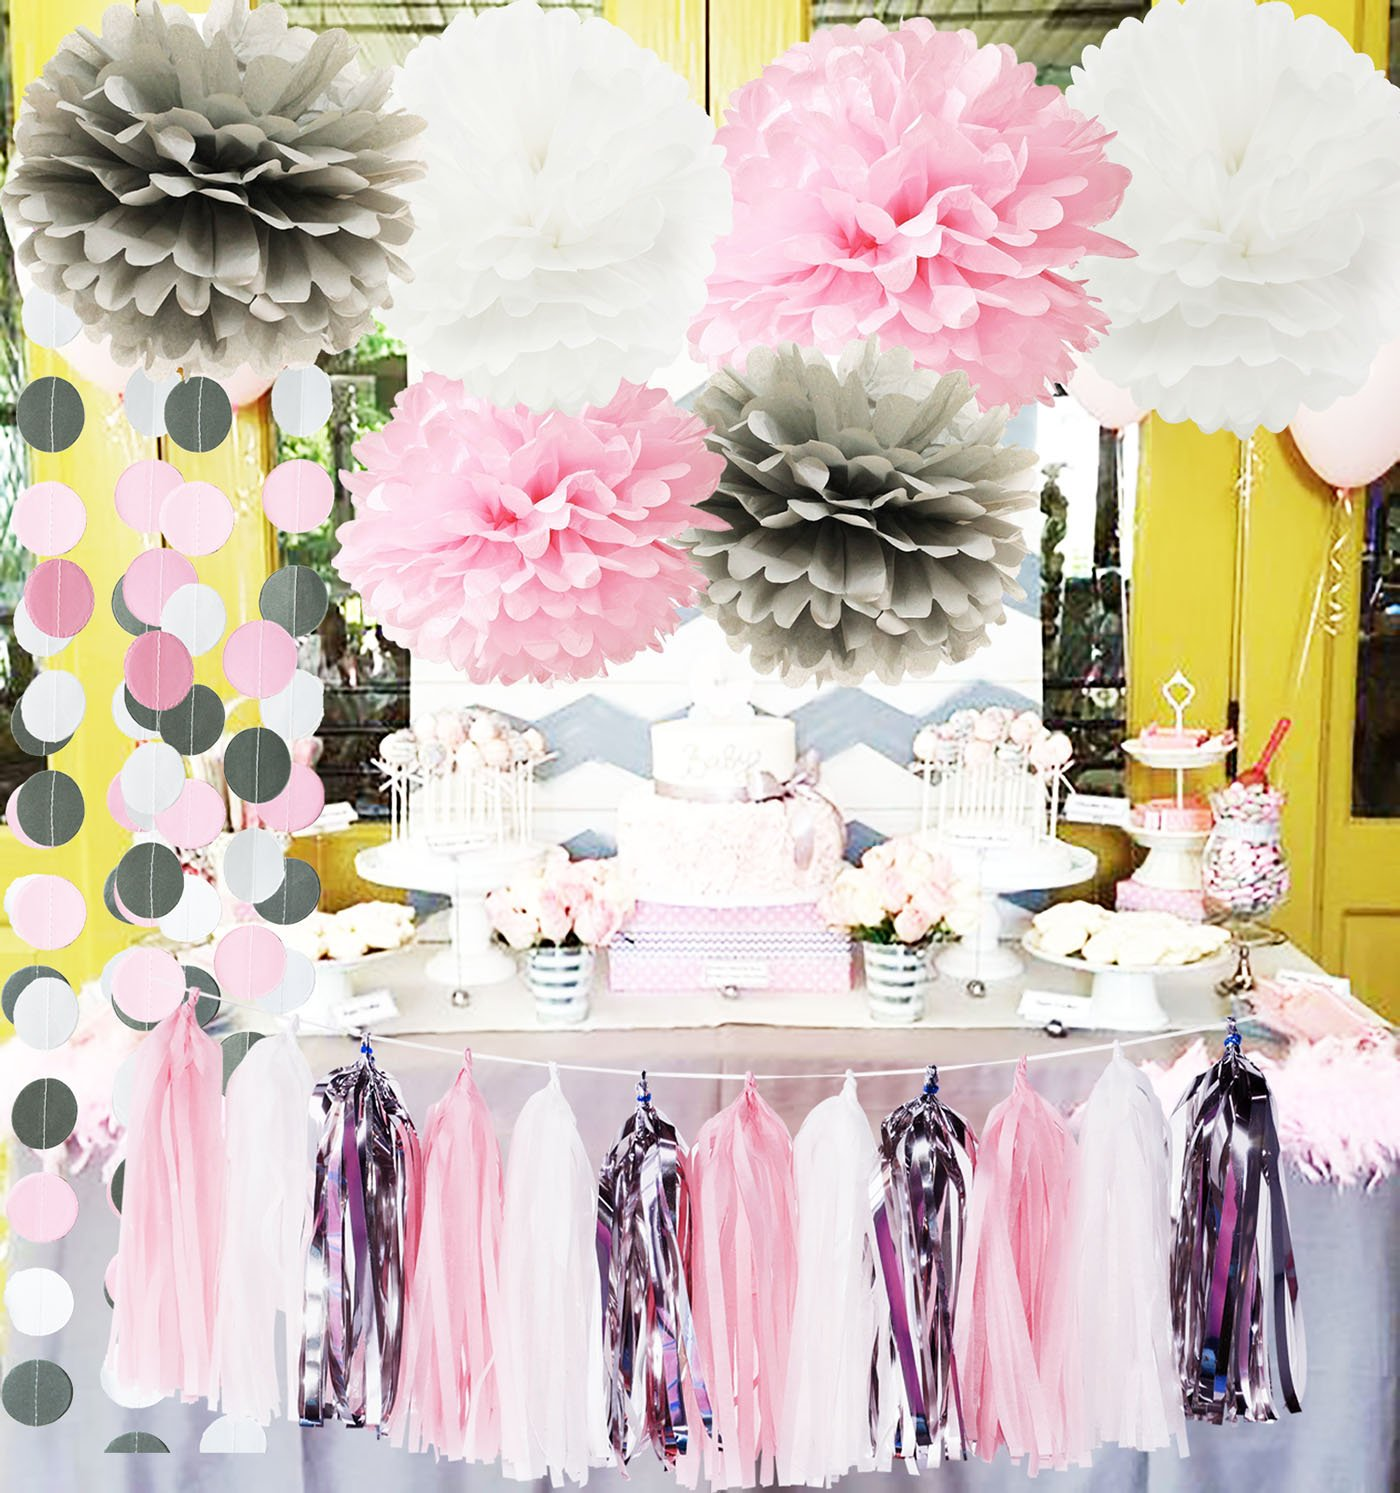 1st Birthday Decorations Girl.Details About First Birthday Decorations Girl Baby Pink Grey Baby Girl Baby Shower Party De